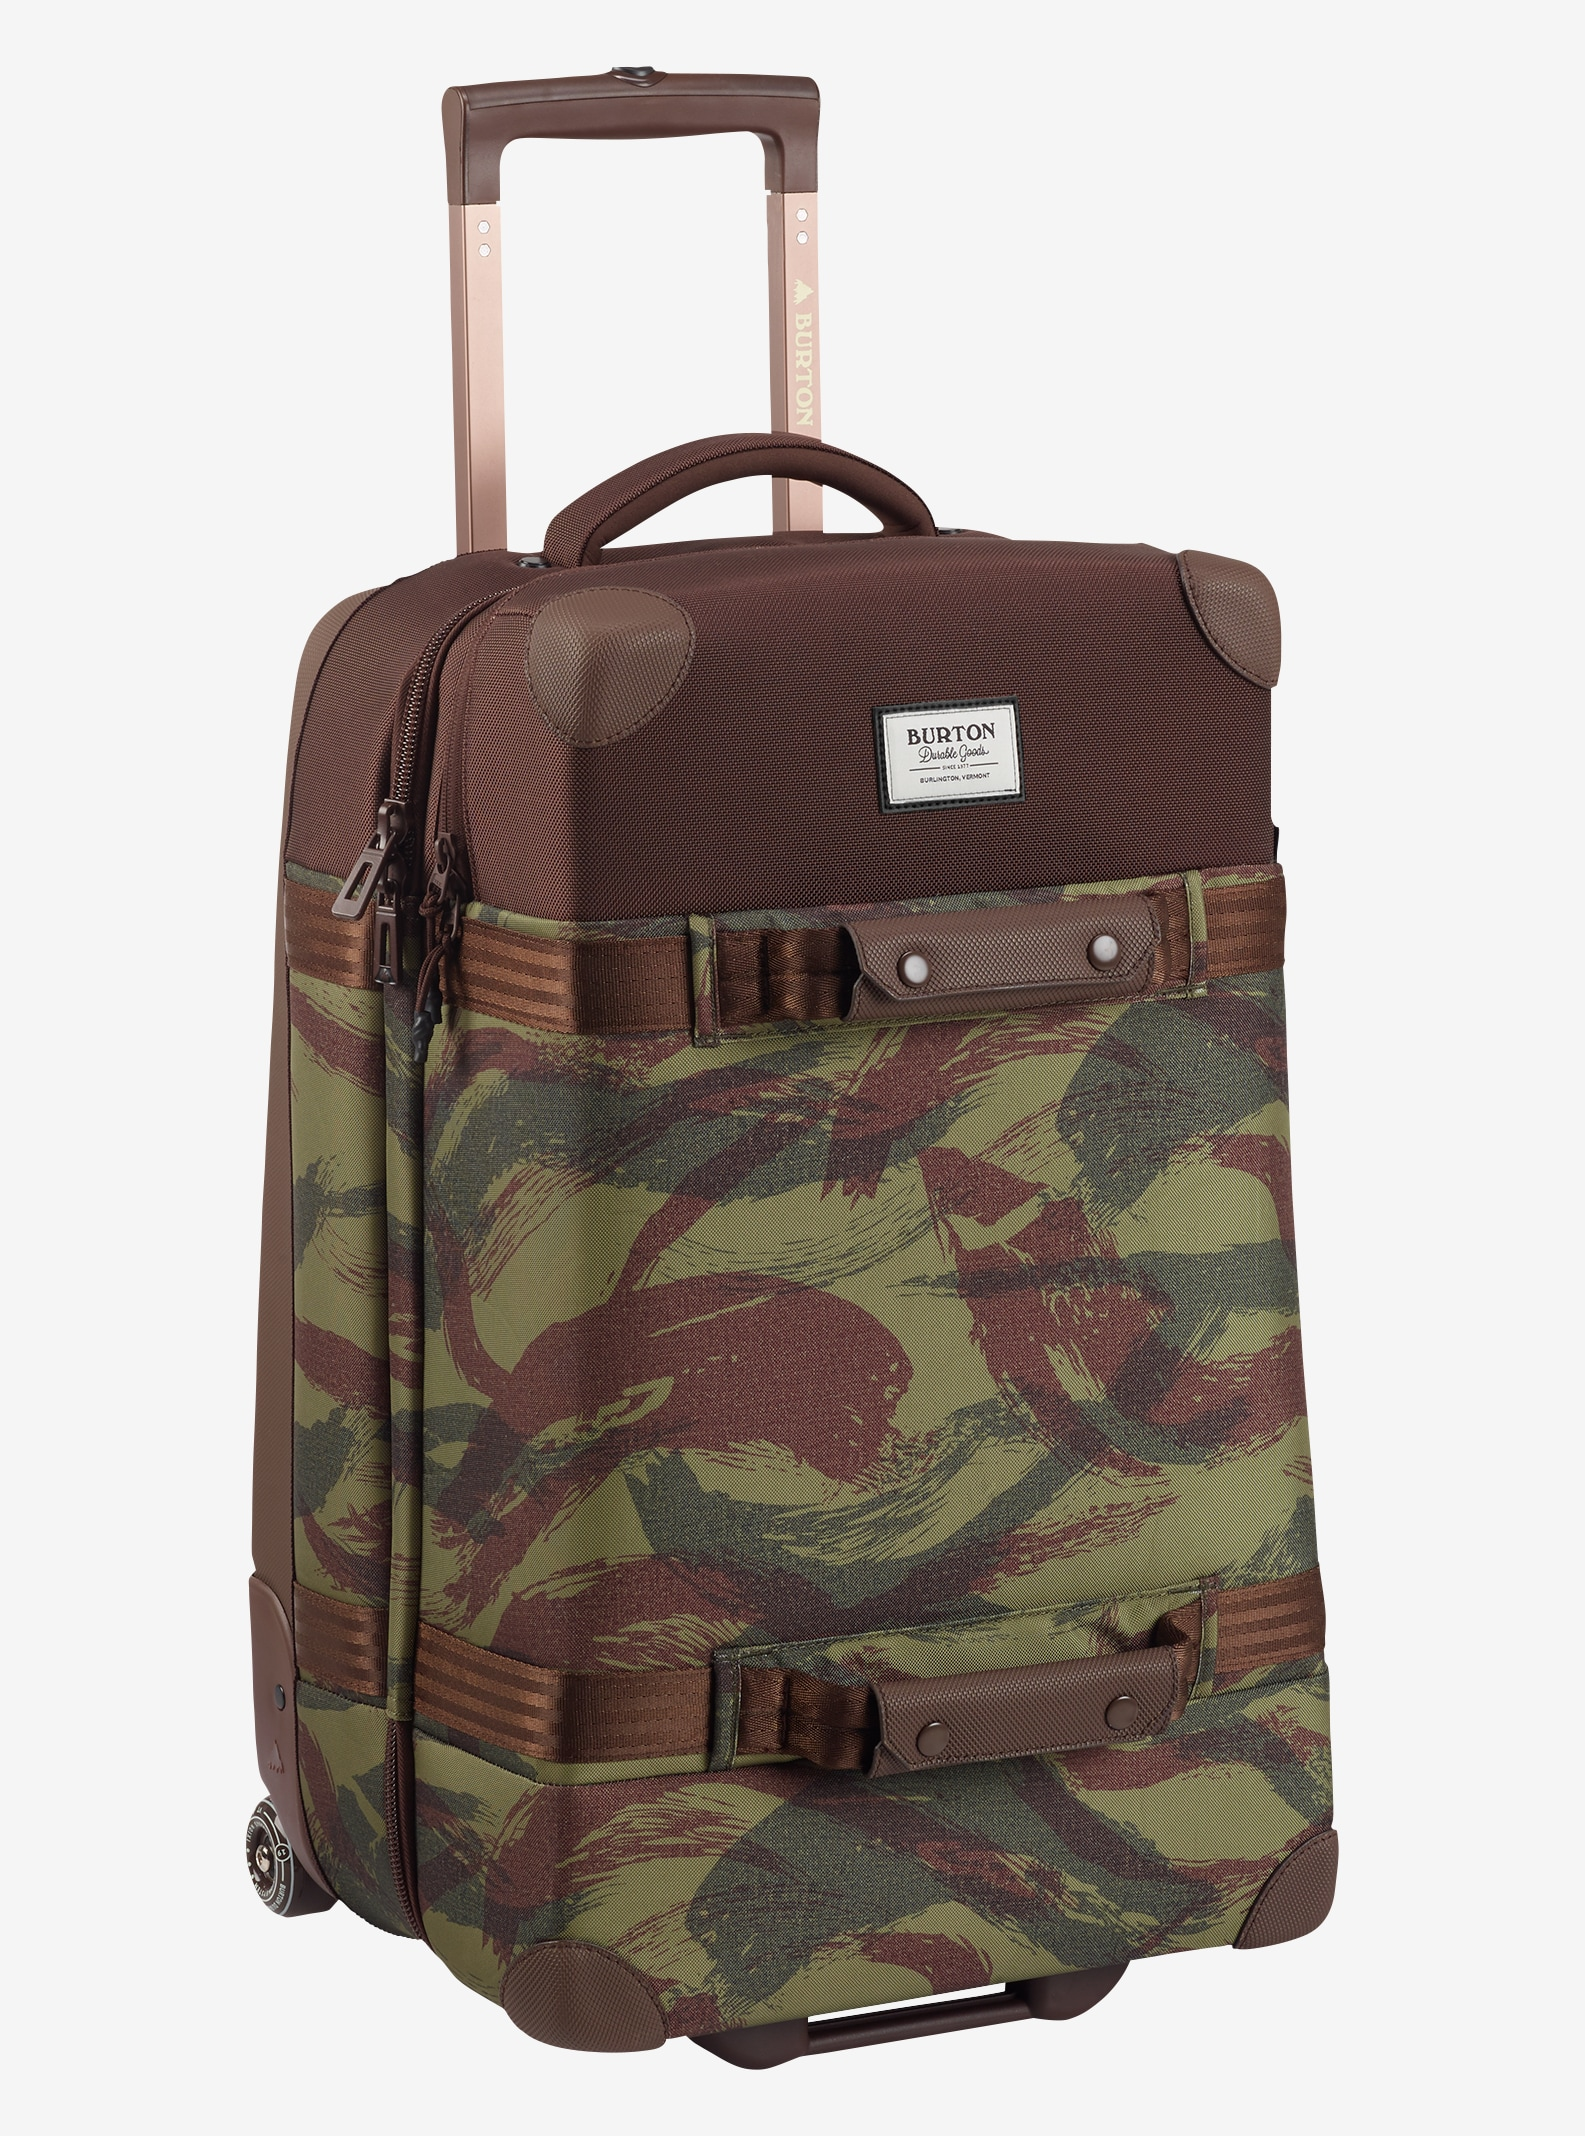 Burton Wheelie Cargo Travel Bag shown in Brushstroke Camo Print